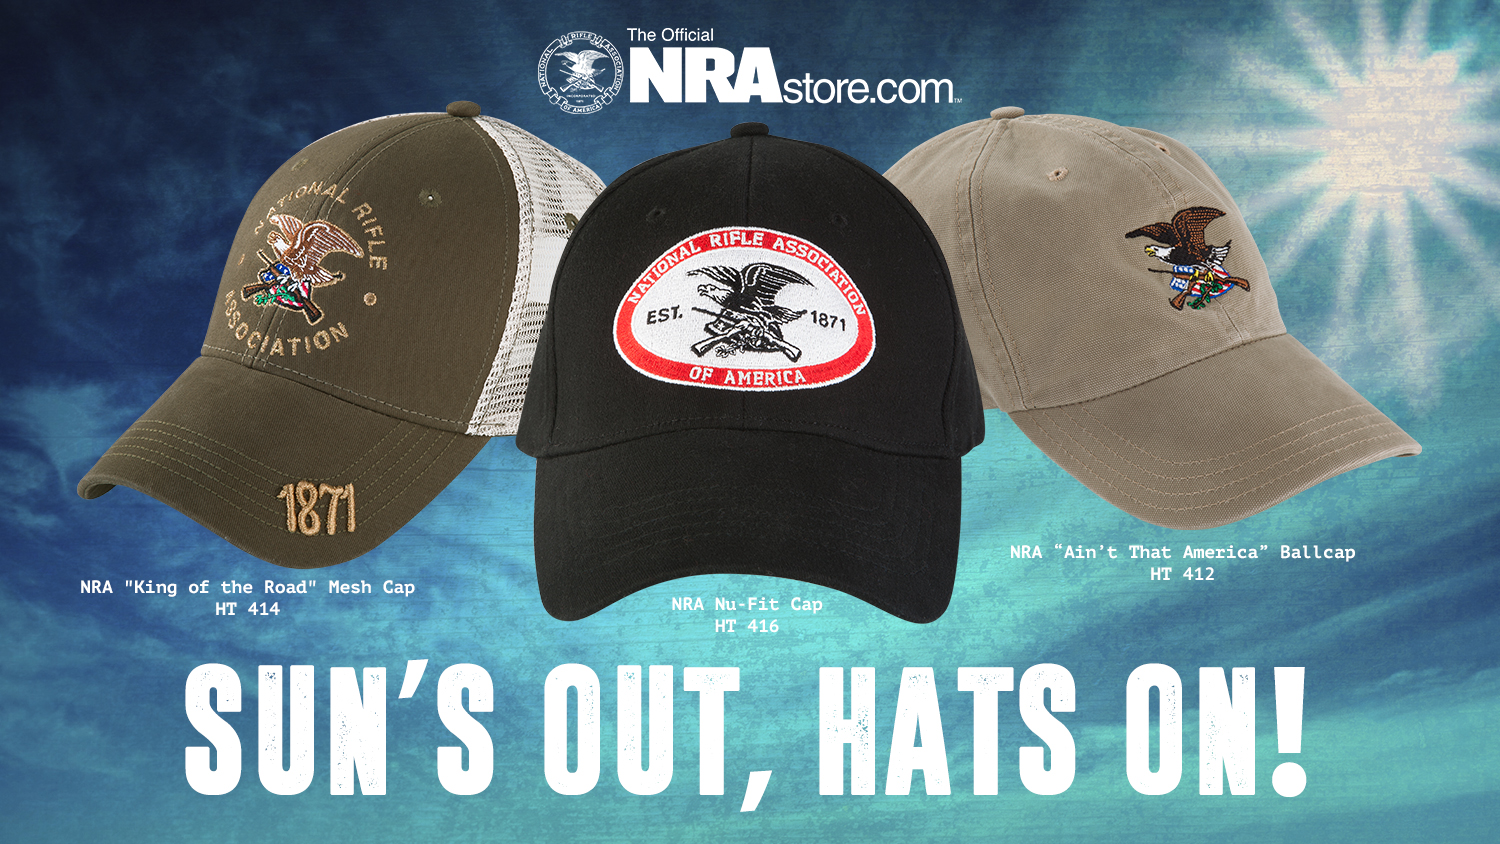 NRA Store Product Highlight: Second Amendment Hats